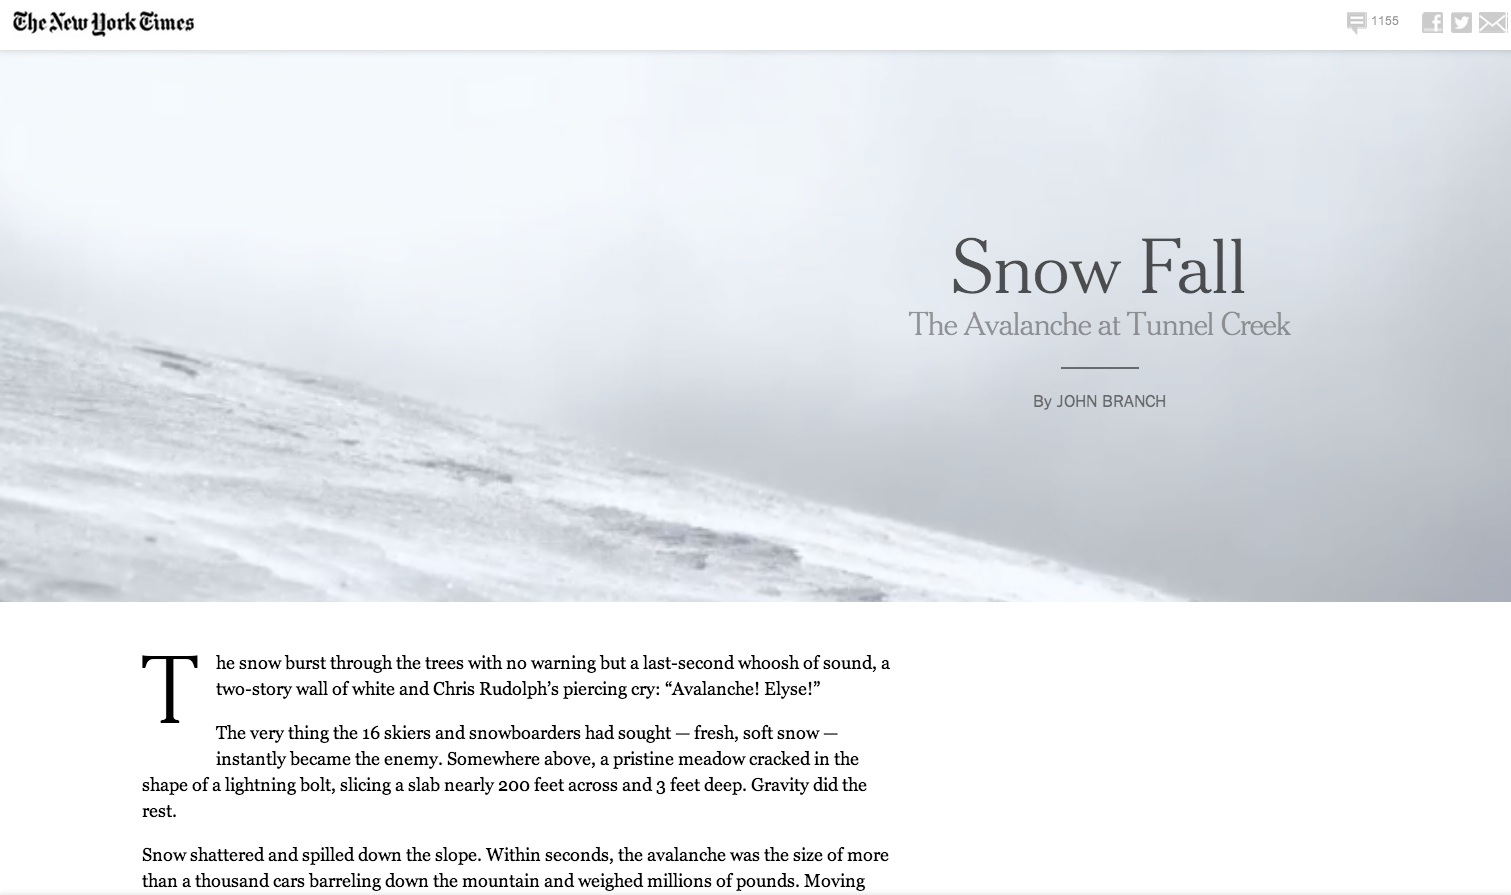 http://www.nytimes.com/projects/2012/snow-fall/#/?part=tunnel-creek